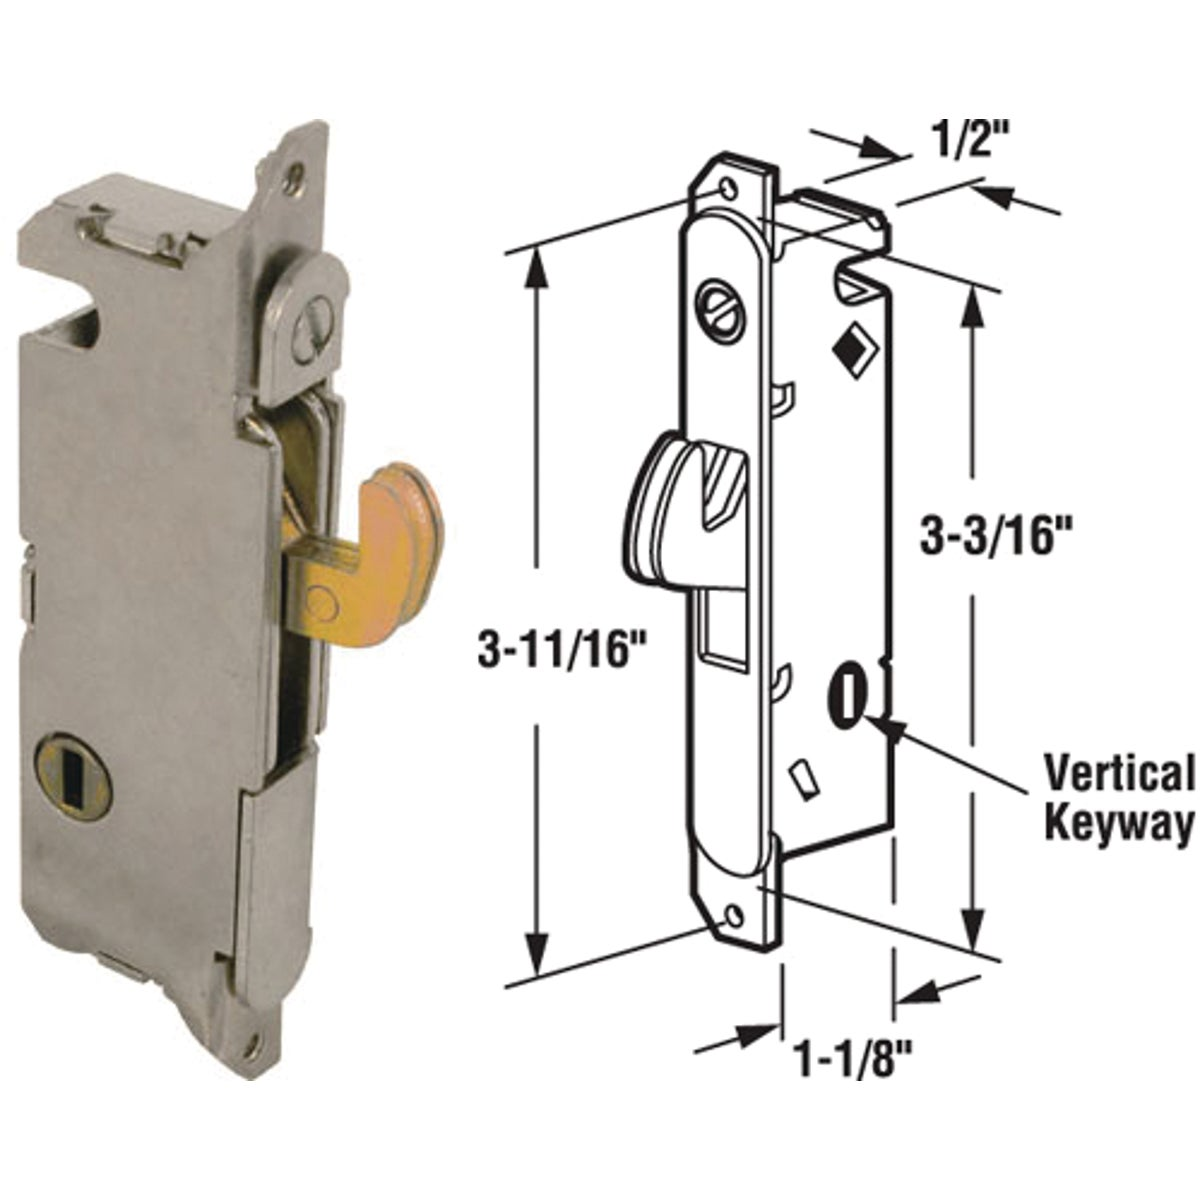 SLIDNG DOOR MORTISE LOCK